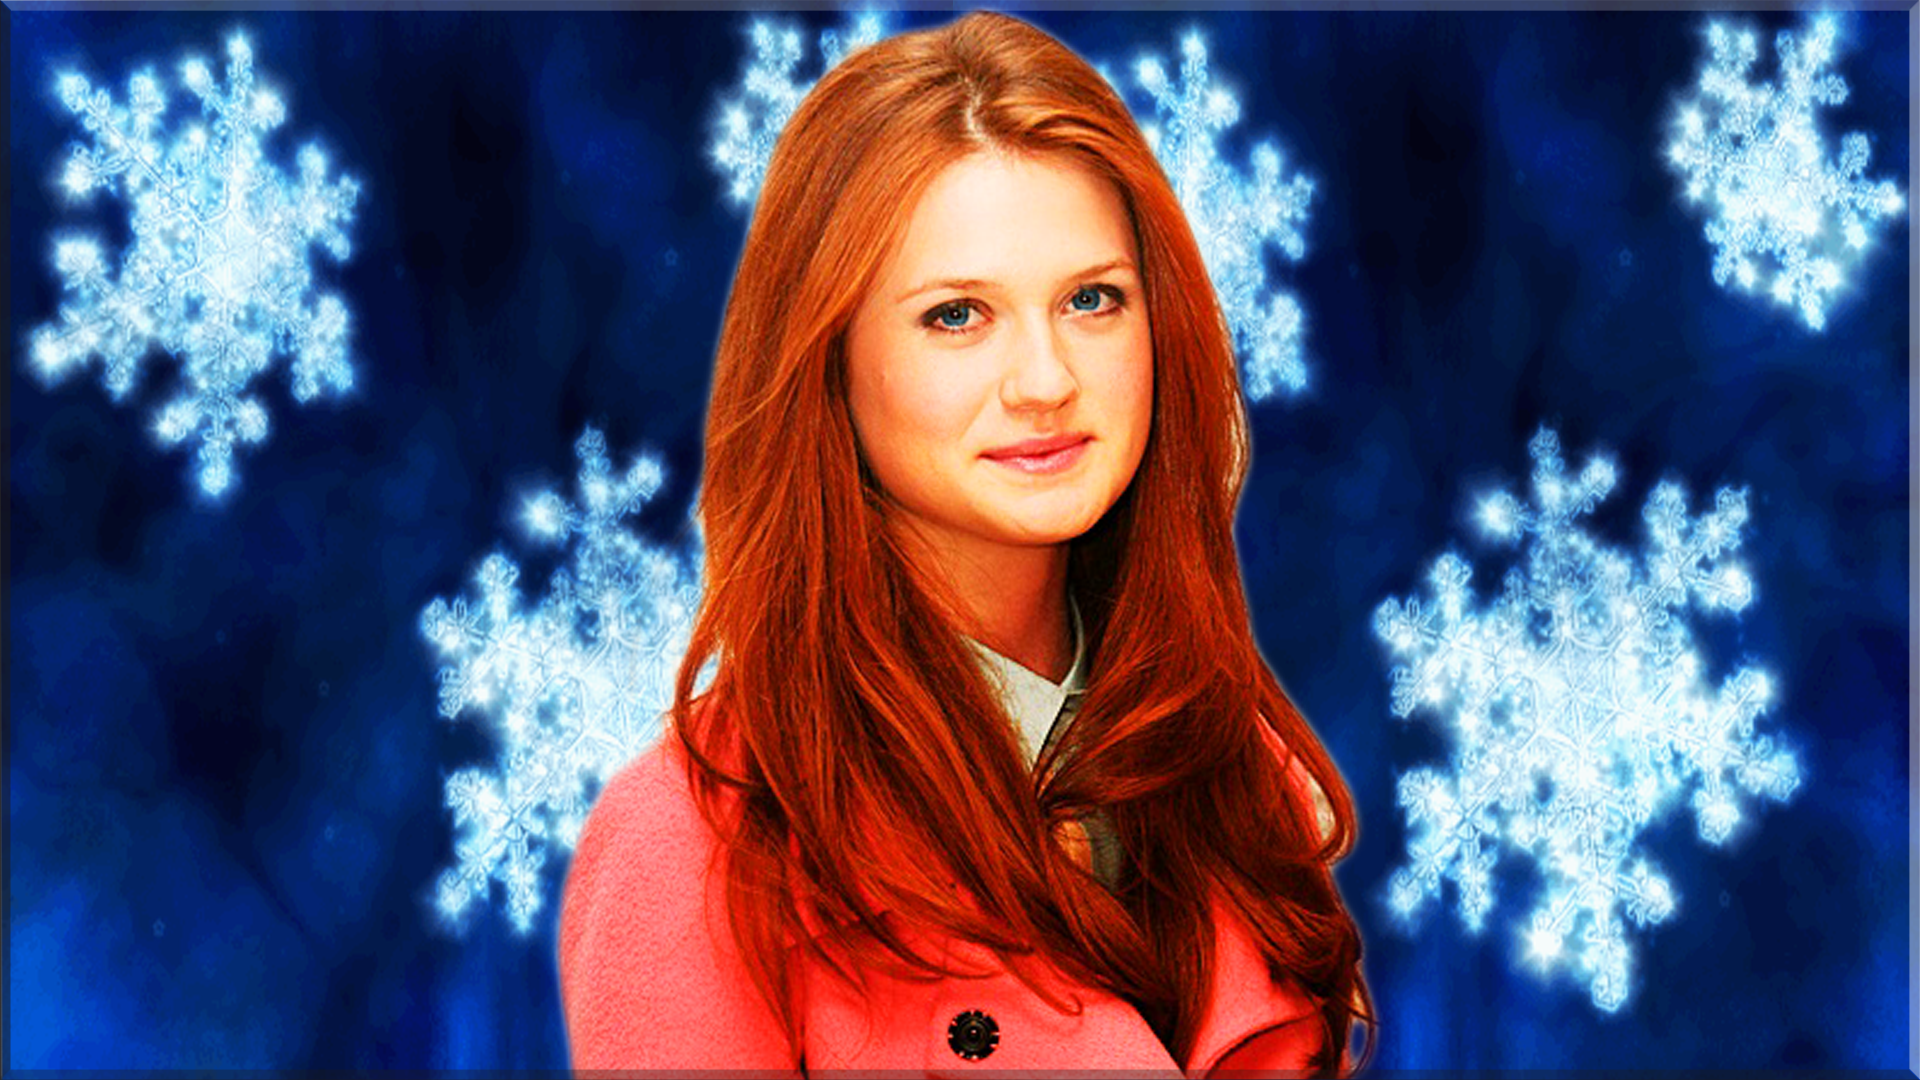 1920x1080 - Bonnie Wright Wallpapers 9